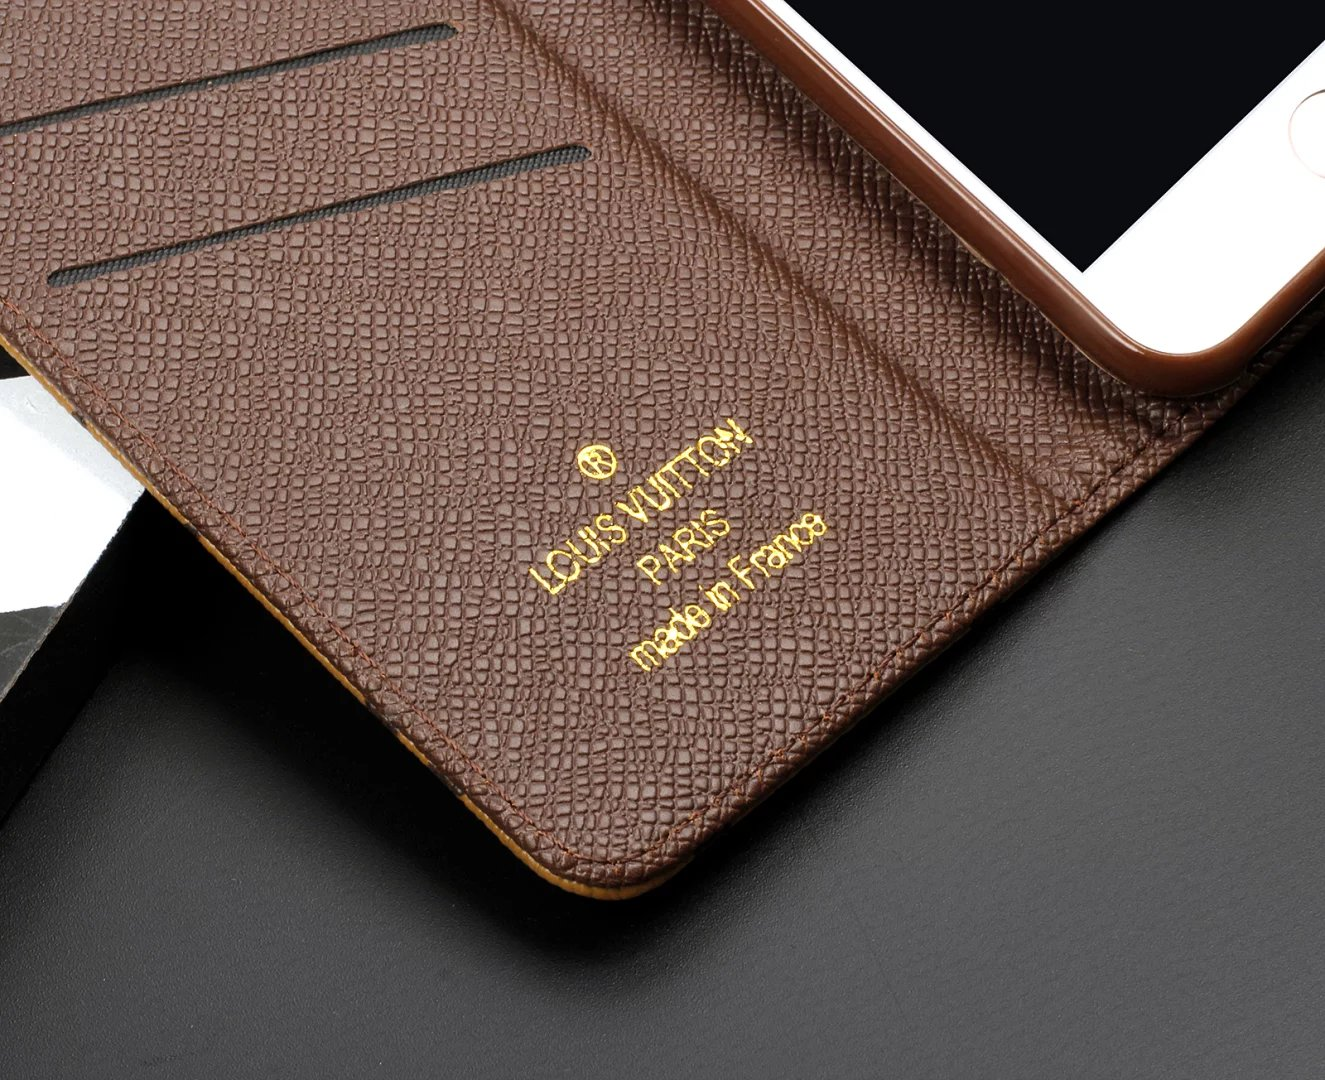 best case for iphone 8 Plus s phone cases for a iphone 8 Plus Louis Vuitton iphone 8 Plus case iPhone 8 Plus leather case designer buy mobile phone covers design own iPhone 8 Plus case iphoe cases designer iphone covers cm elite